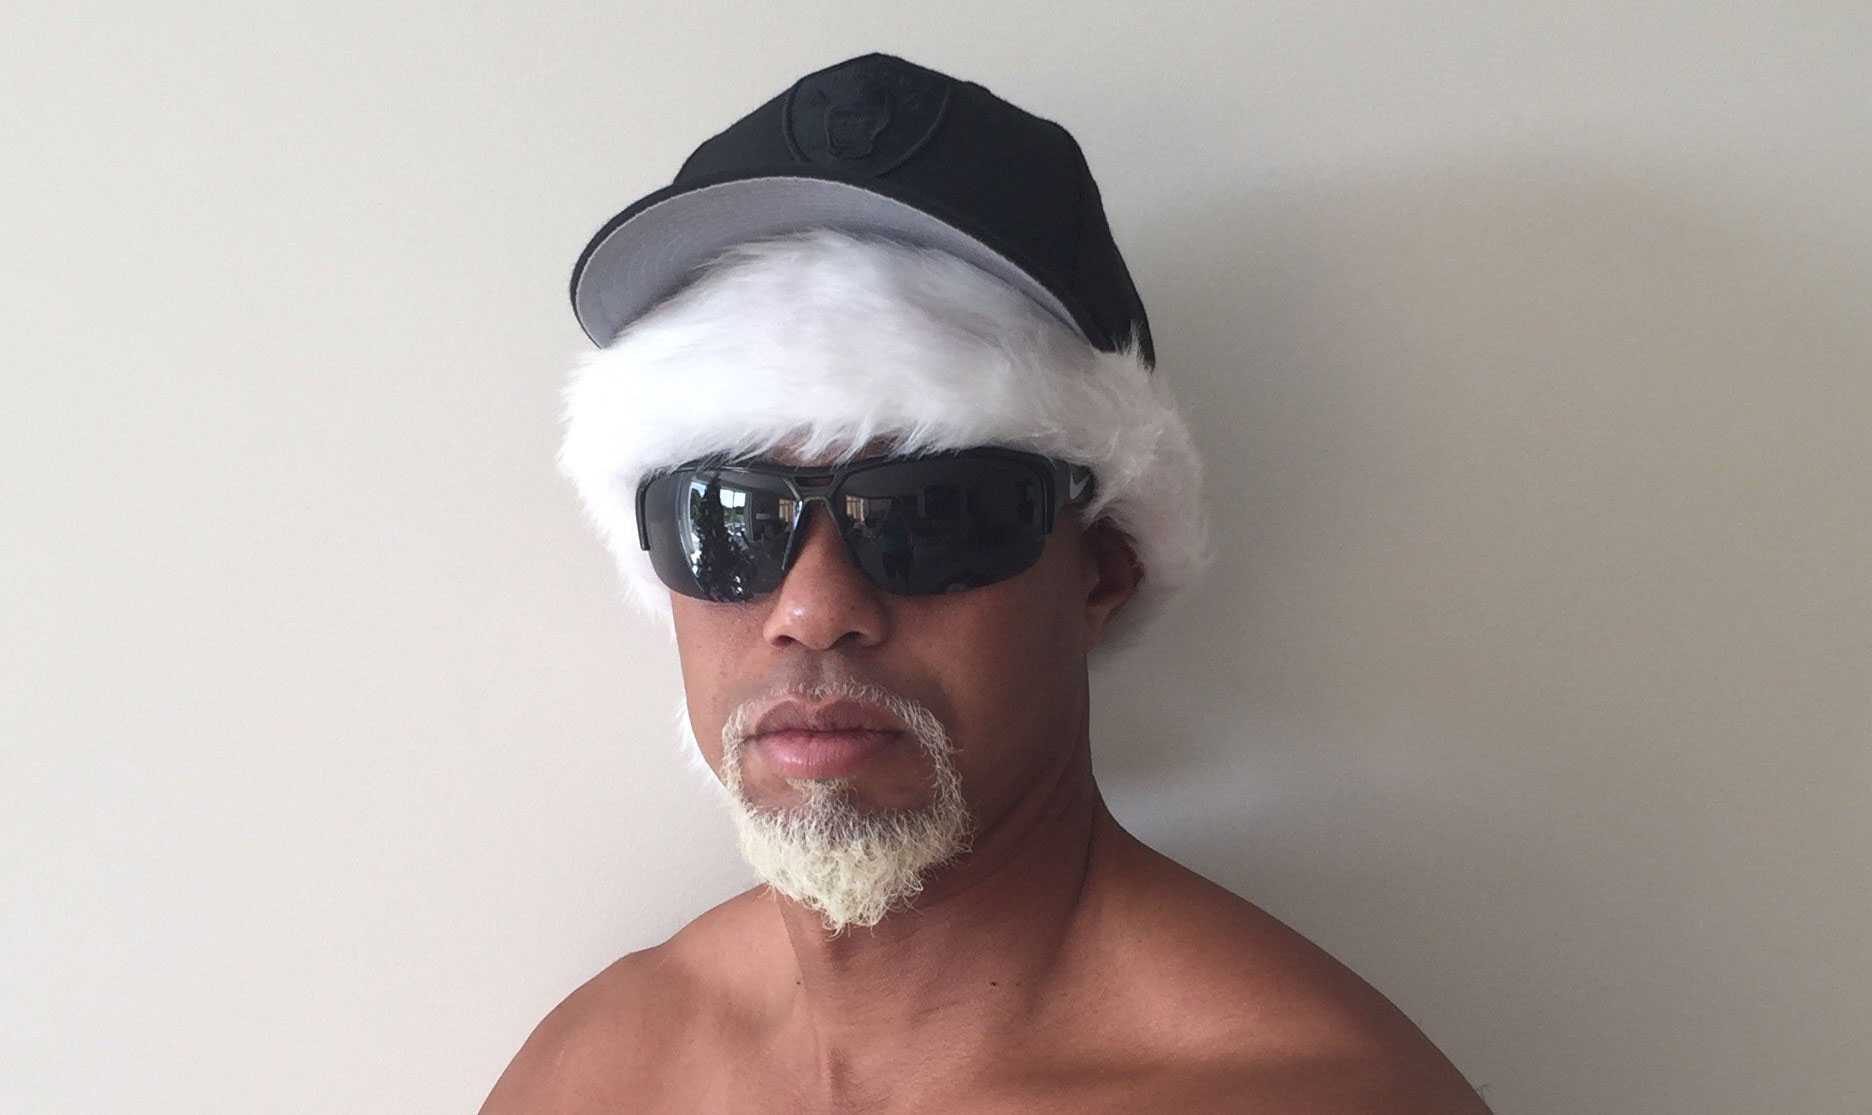 Tiger Woods posted a freaky shirtless photo calling himself 'Mac Daddy Santa'